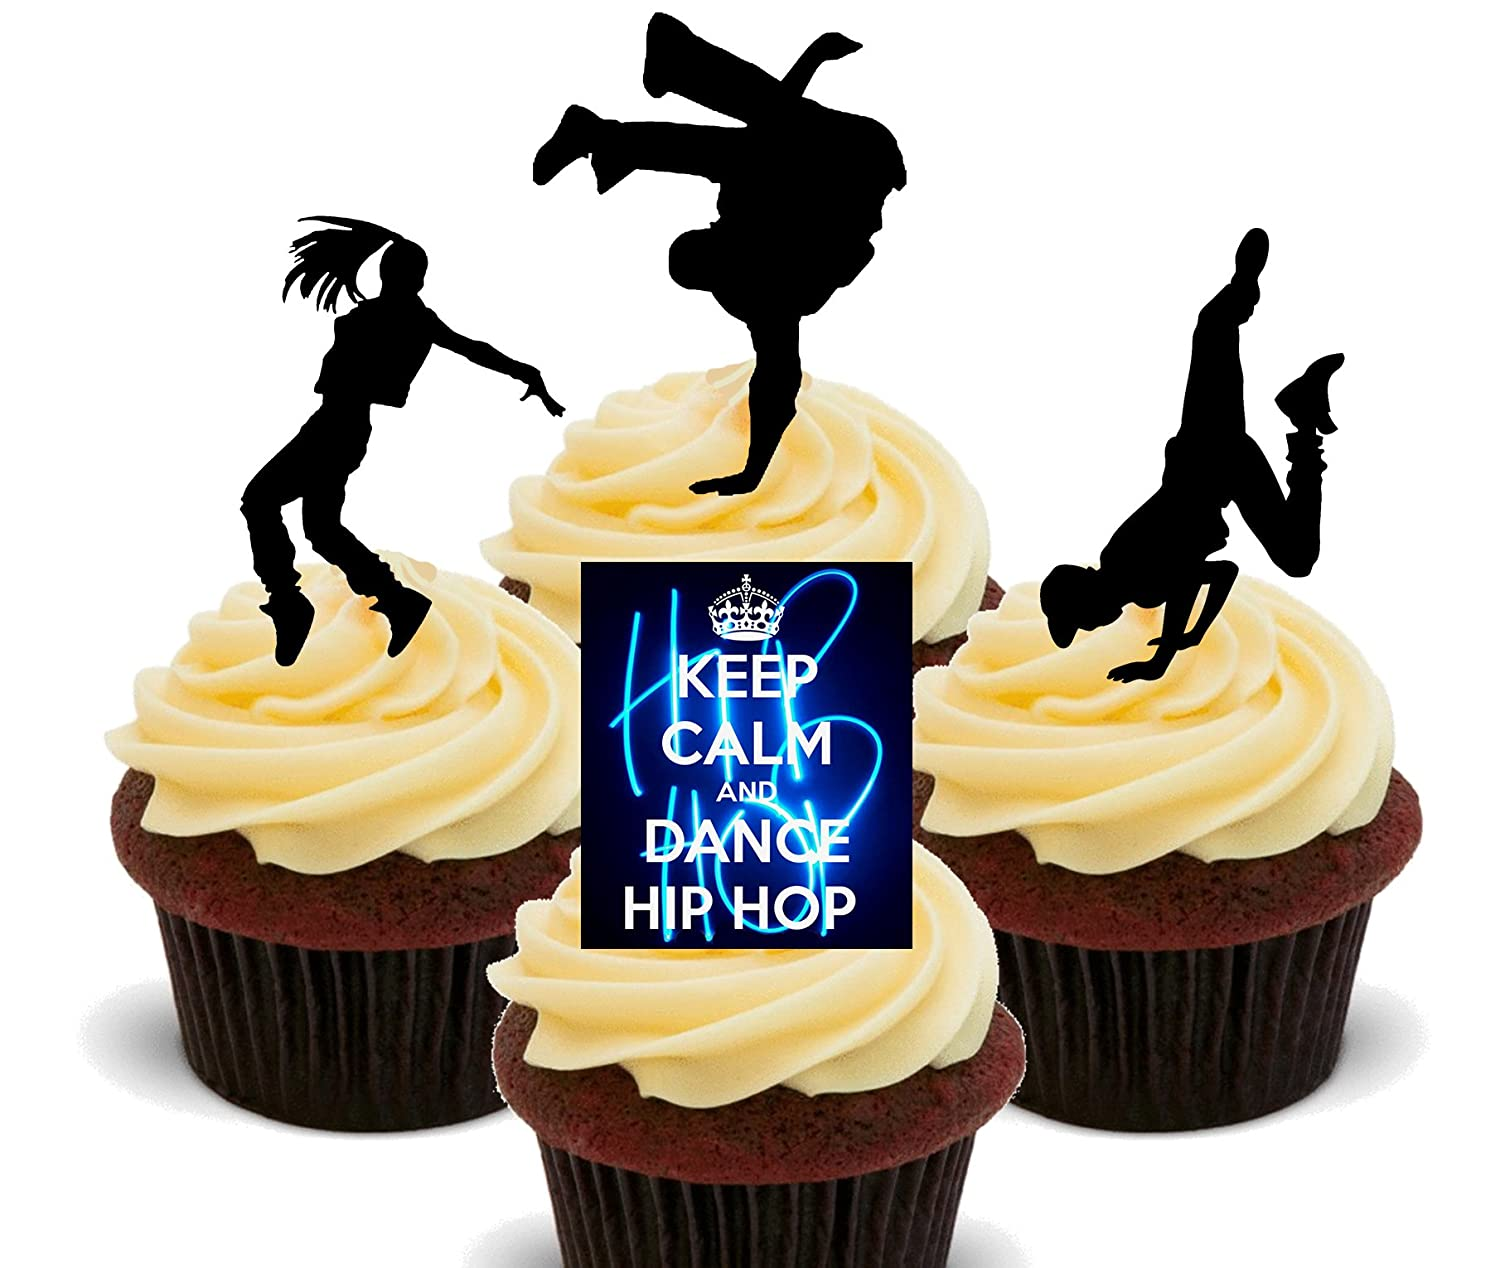 Keep Calm and Dance Hip Hop Edible Cupcake Toppers - Stand-up Wafer ...